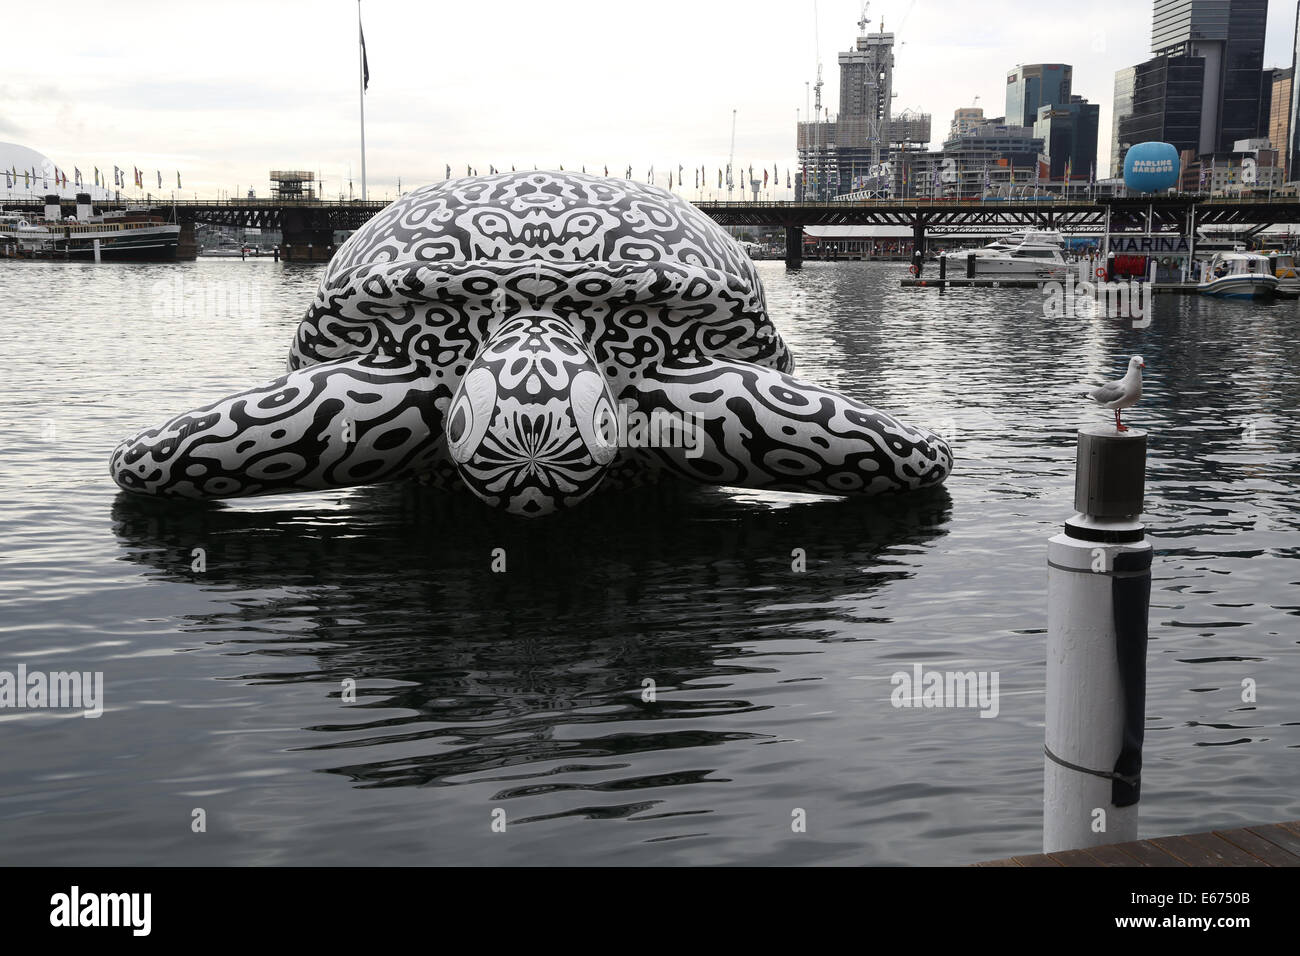 Cockle Bay, Darling Harbour, Sydney, NSW, Australia. 16 August 2014. An inflatable sea turtle sculpture, called - Stock Image